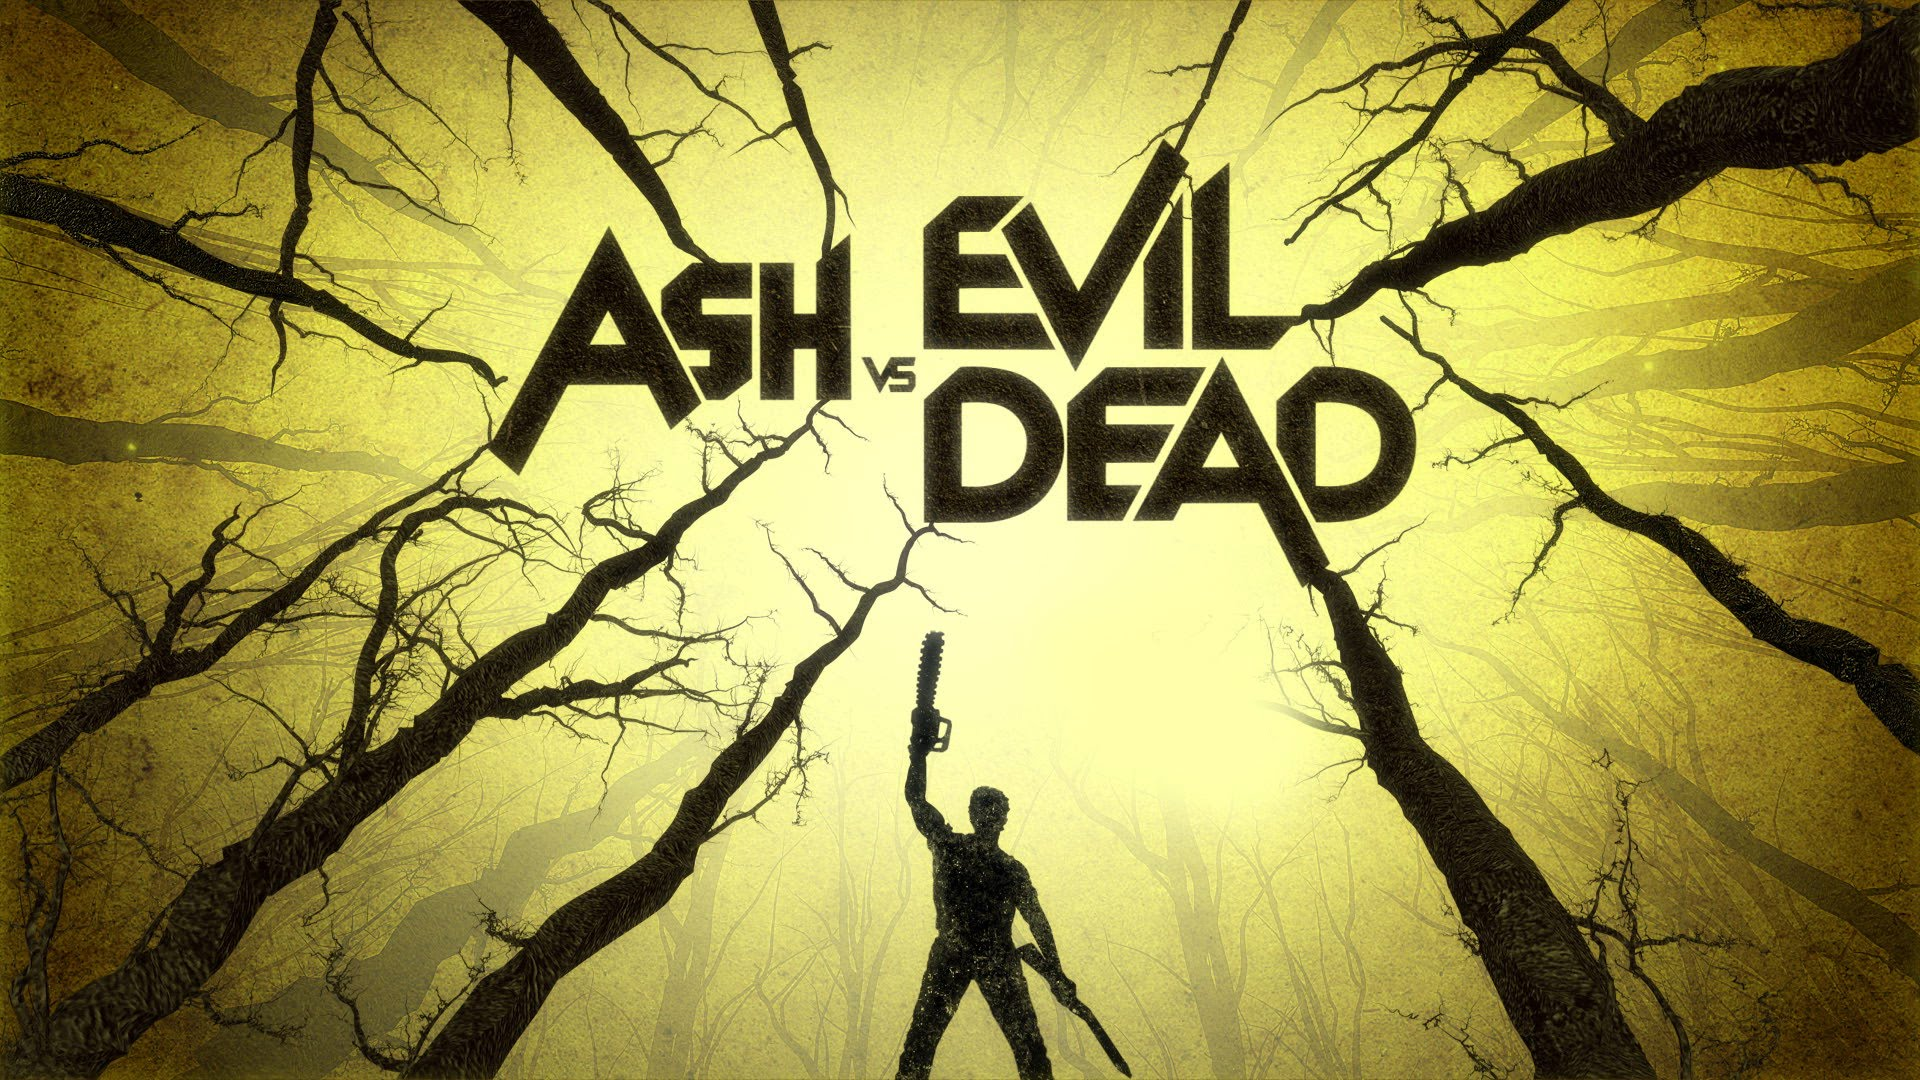 Ash vs Evil Dead cover photo